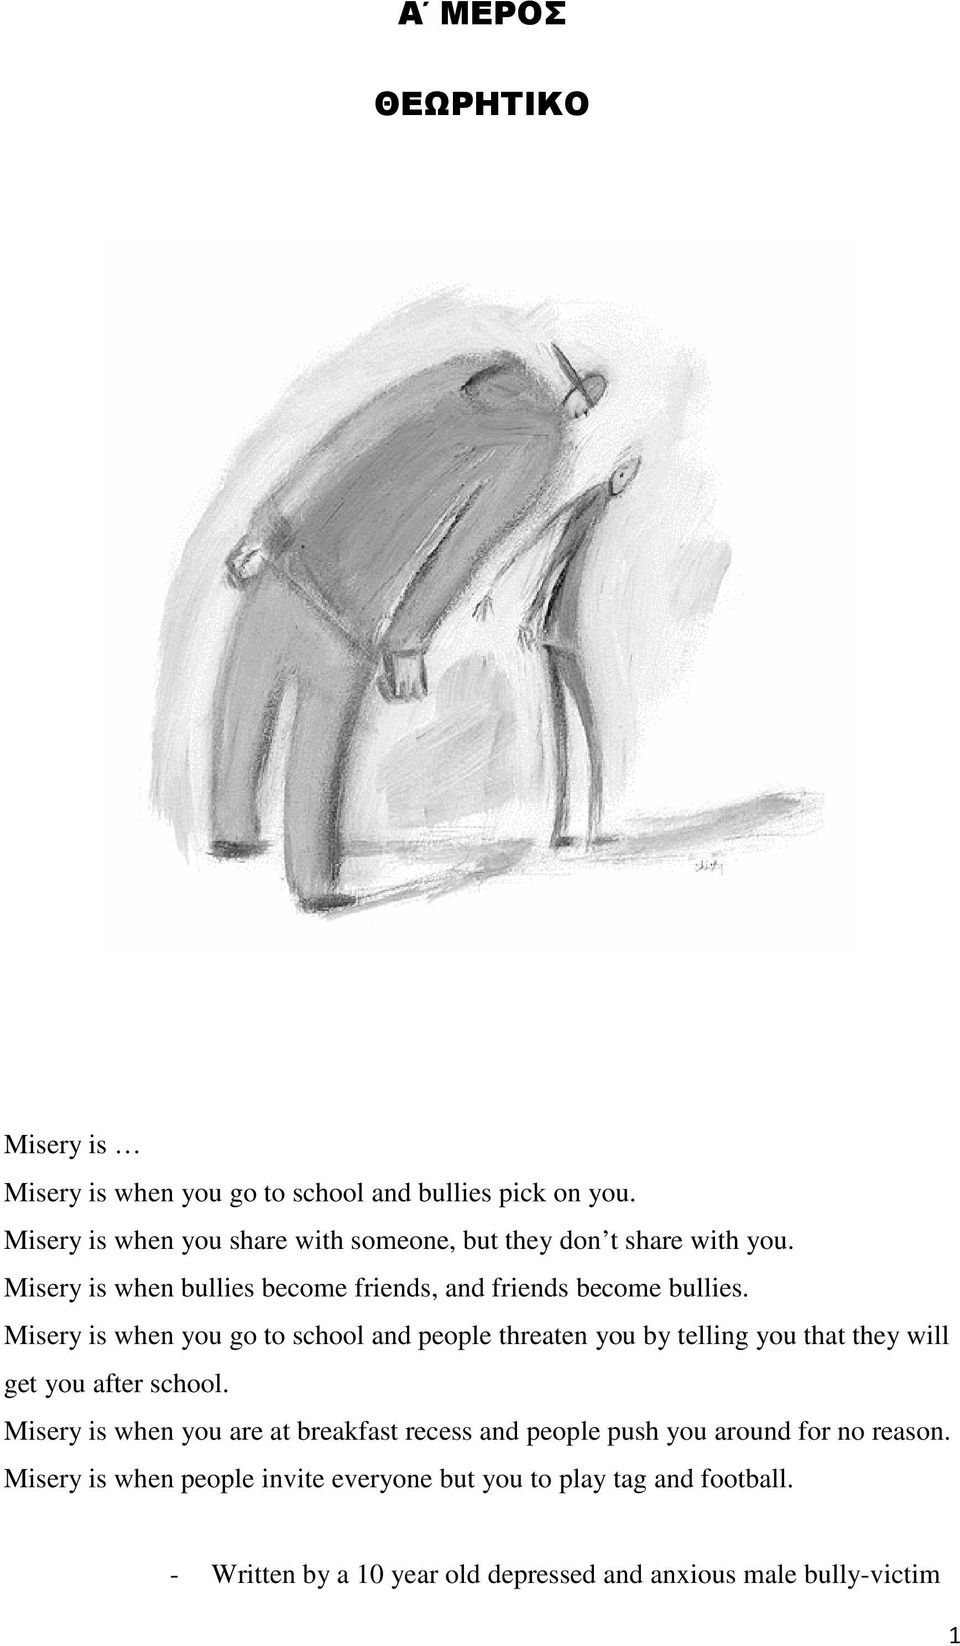 Misery is when you go to school and people threaten you by telling you that they will get you after school.